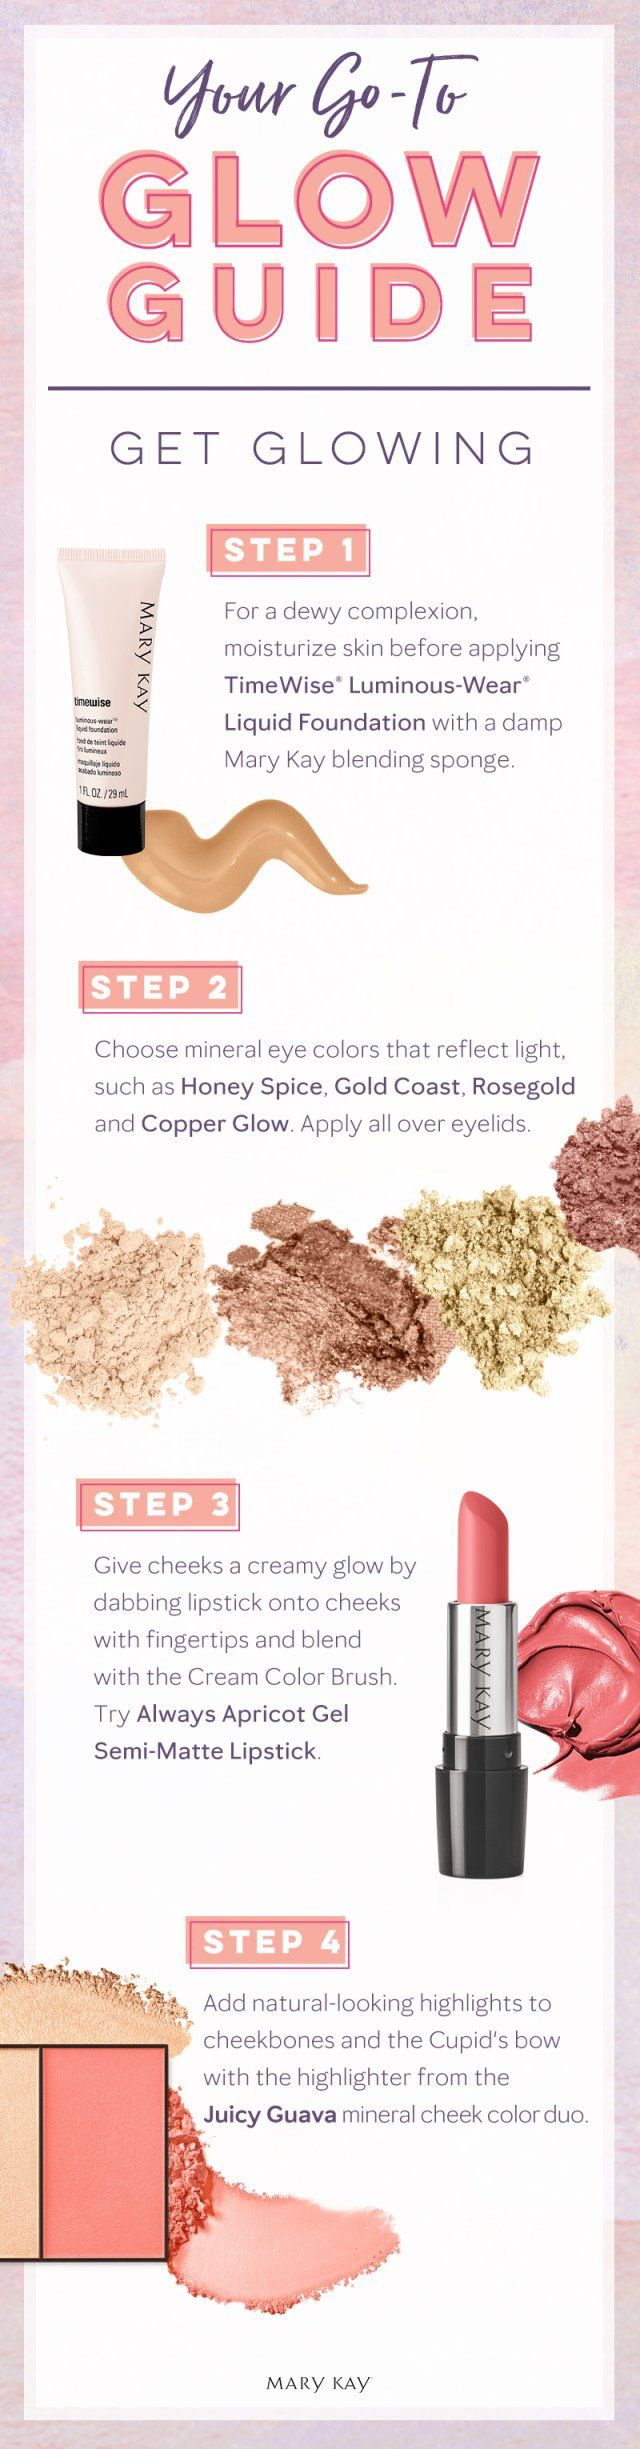 Warmer weather calls for a gorgeous glow. Bring out flushed cheeks, dewy skin, and sunlit highlights with this springtime makeup tutorial! | Mary Kay